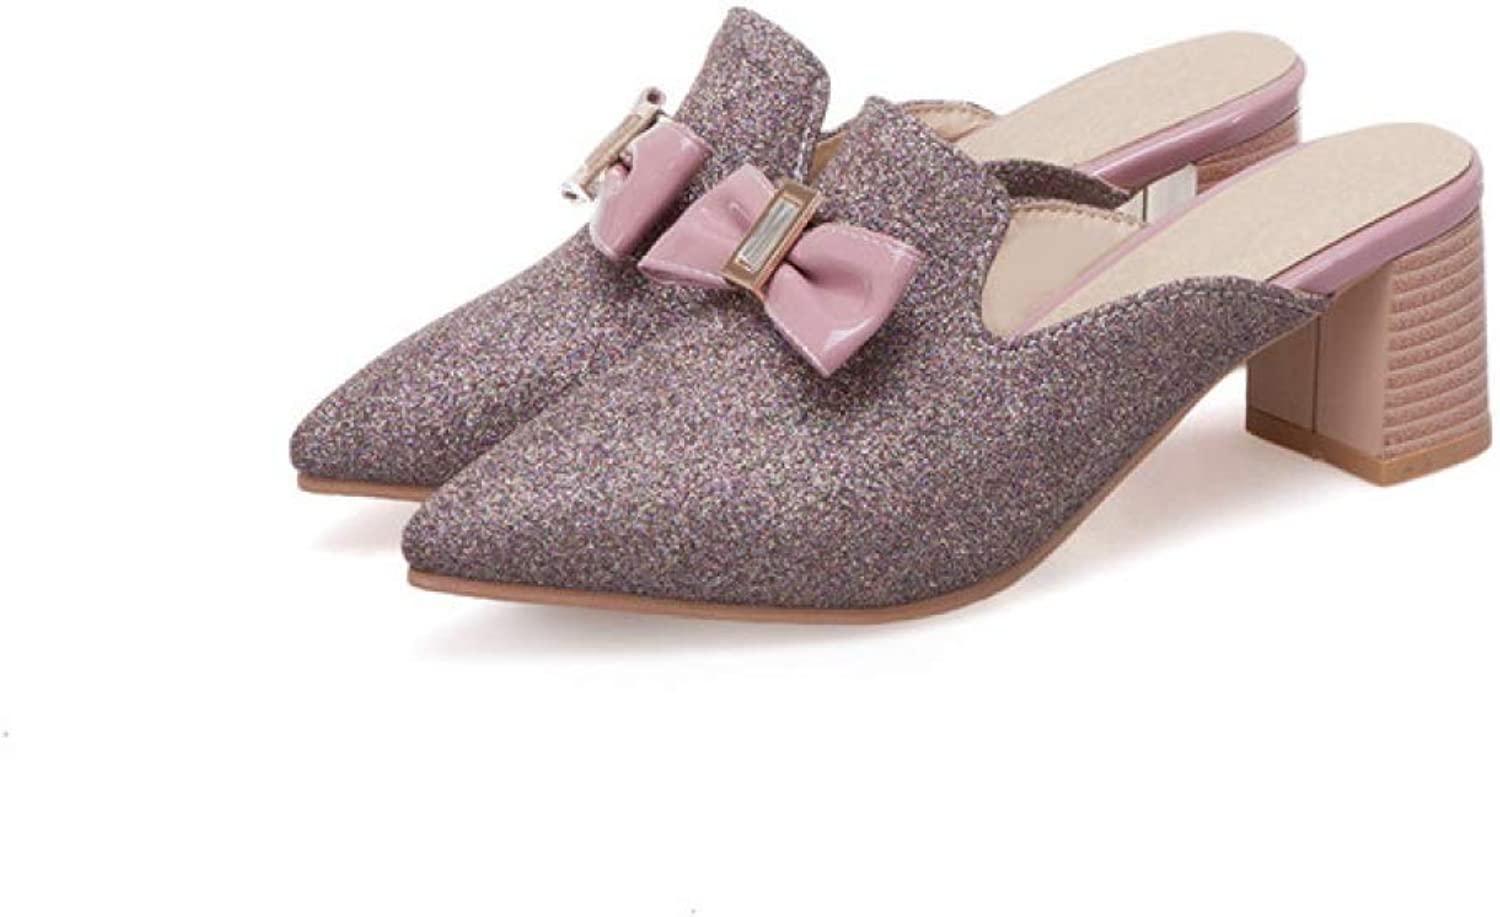 T-JULY Women Pumps Square High Heel shoes Glitter Pointed Toe Mules Ladies Bow Slippers for Spring